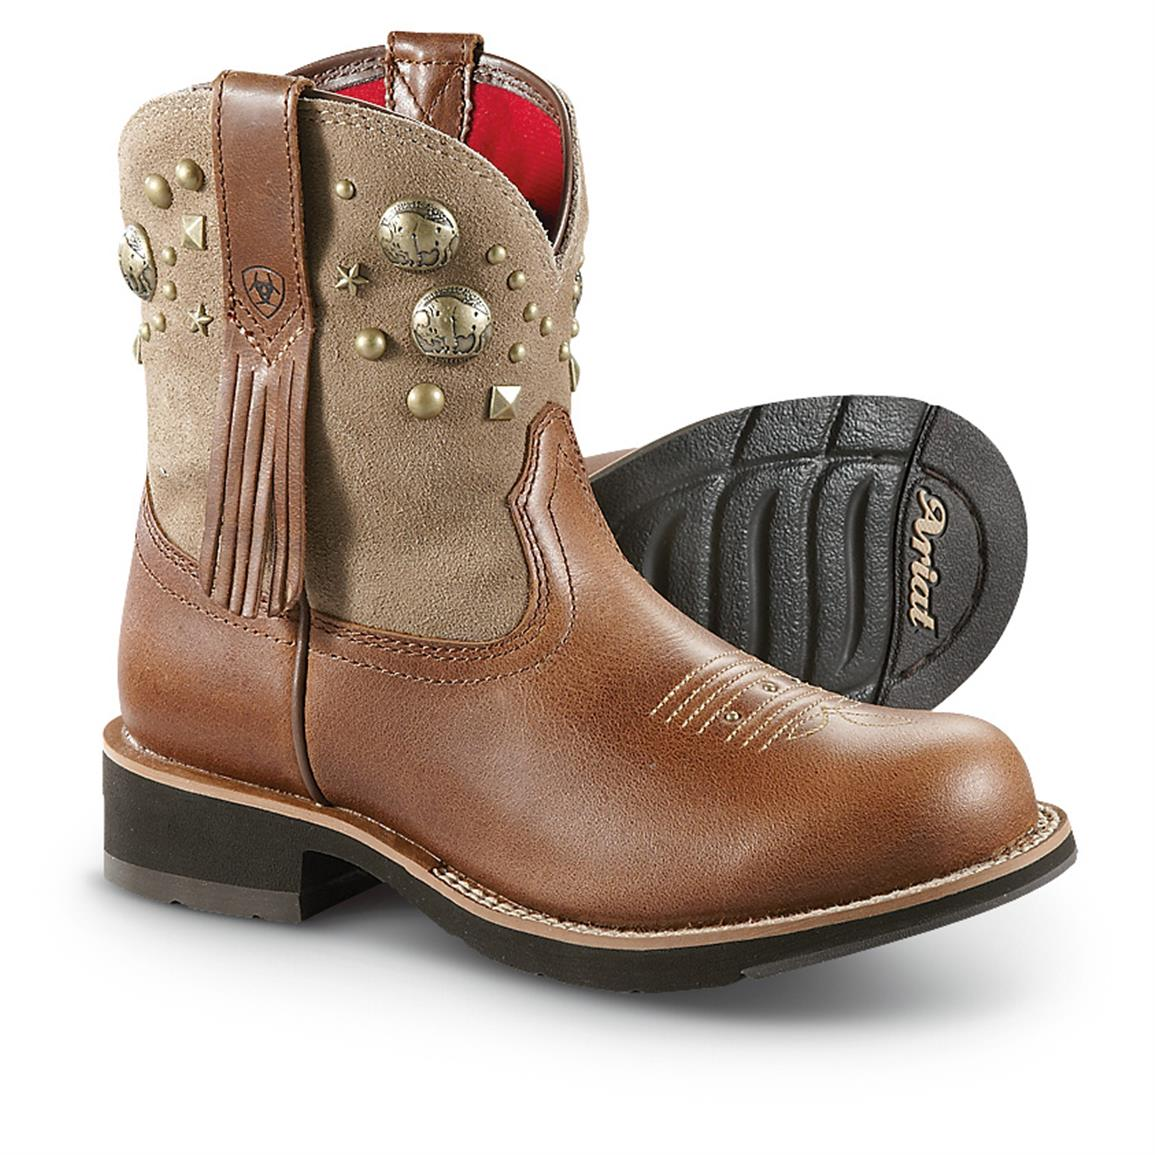 Ariat Fat Baby Boots s6d5ms4c